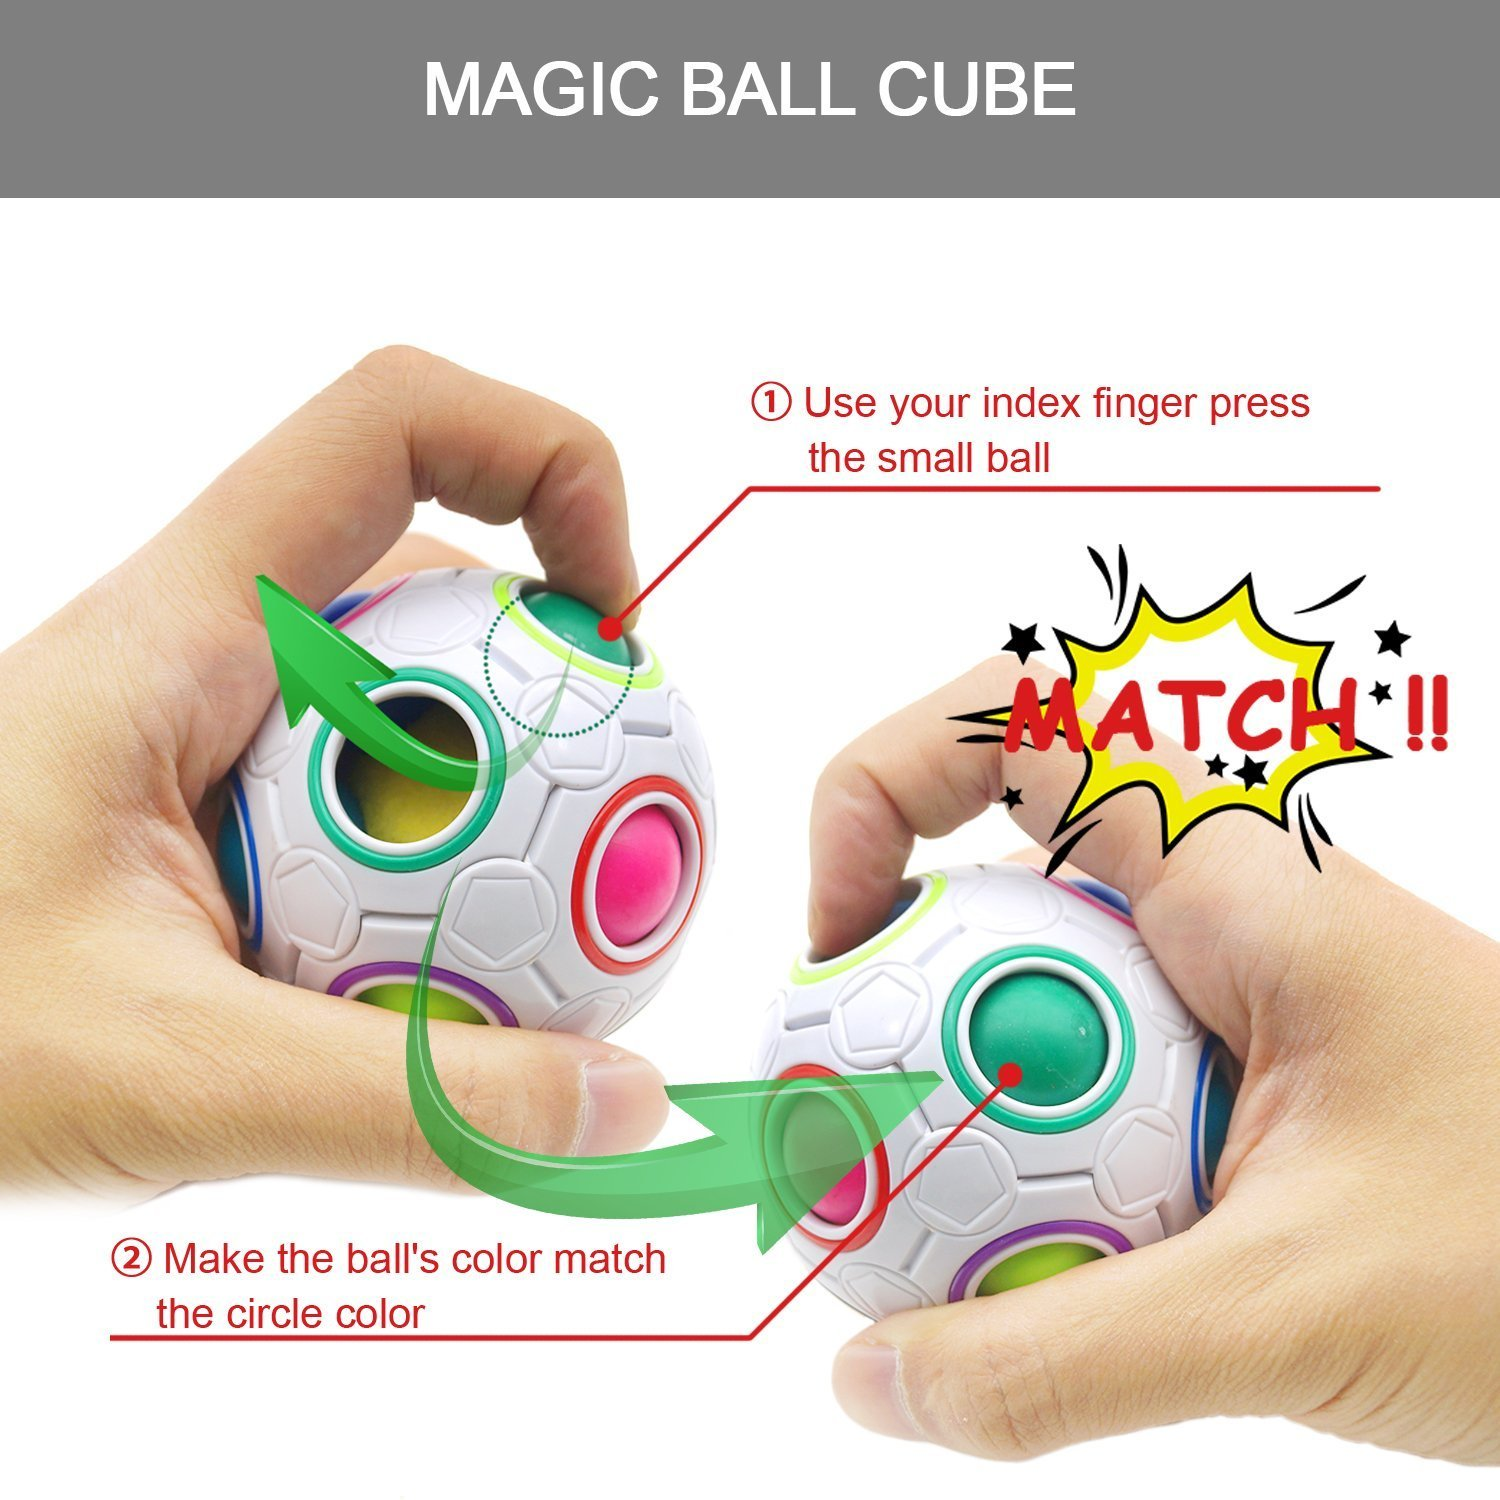 The Ultimate Sensory Fidget Toys Kit for Kids 20 Packs Fidget Cube/Infinity Cube/Squishy Ball/Squeeze Bean/Fidget Pen/Rainbow Magic Balls/Twisted Toy for ADD ADHD Stress Relax Prime by Sumine (Image #6)